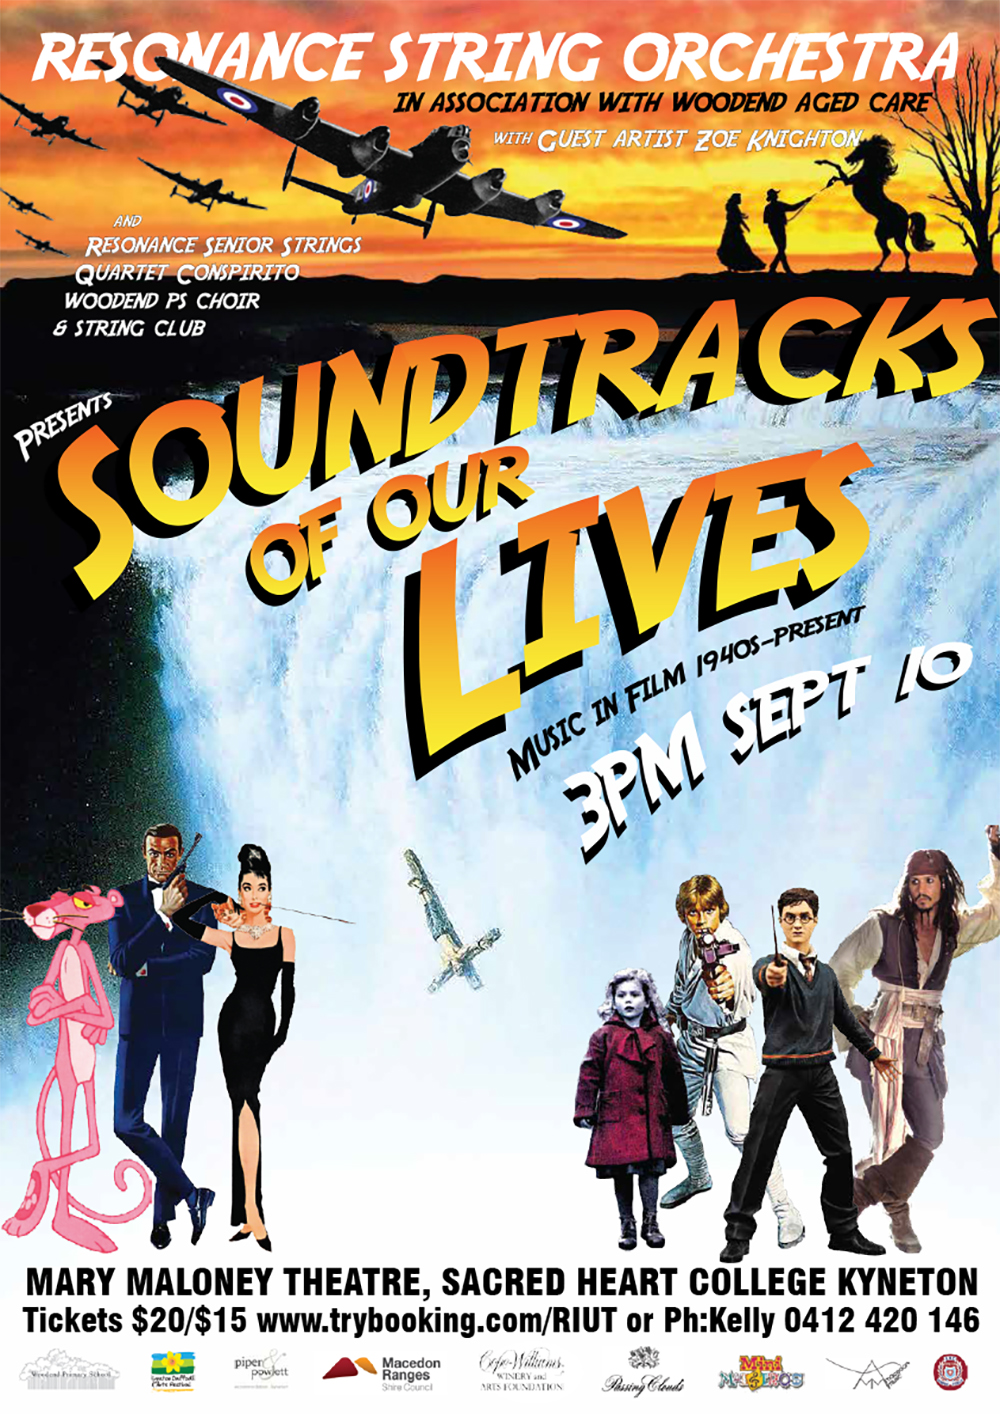 Soundtrackss Of Our Lives poster V2 copy.jpg